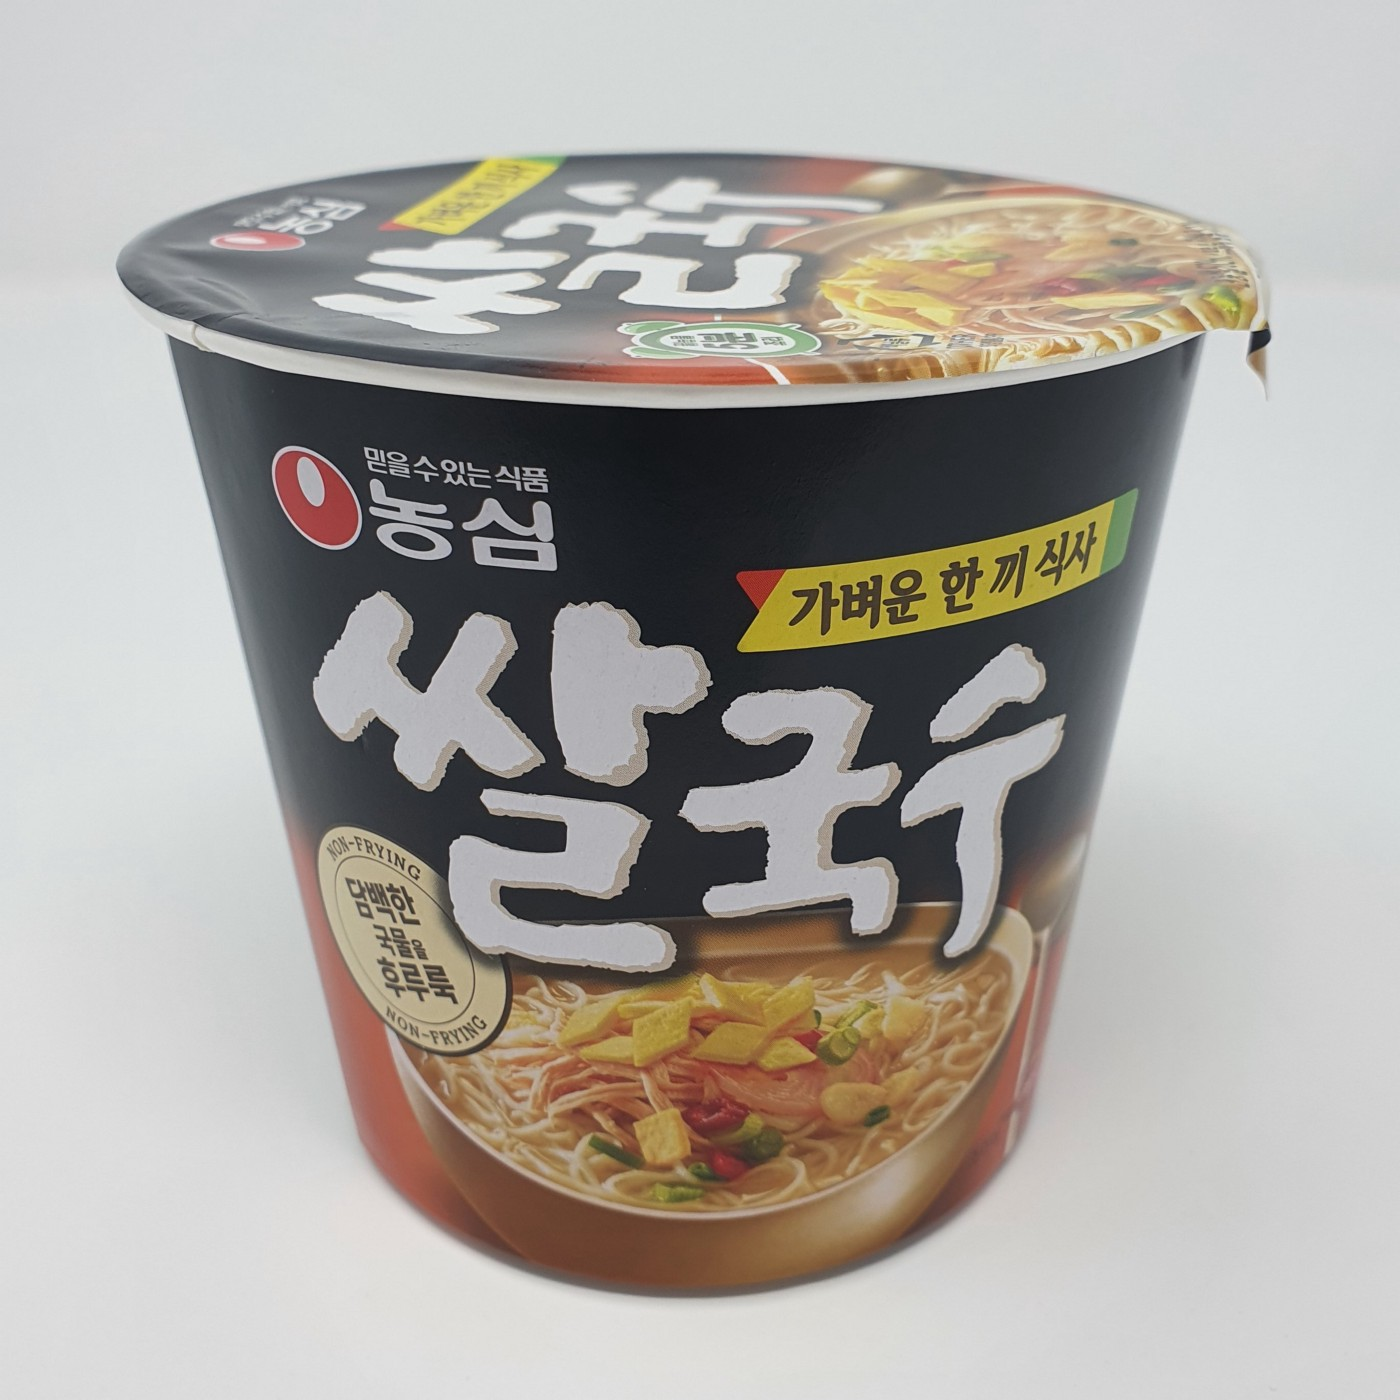 An unopened cup of Nongshim Rice Noodles